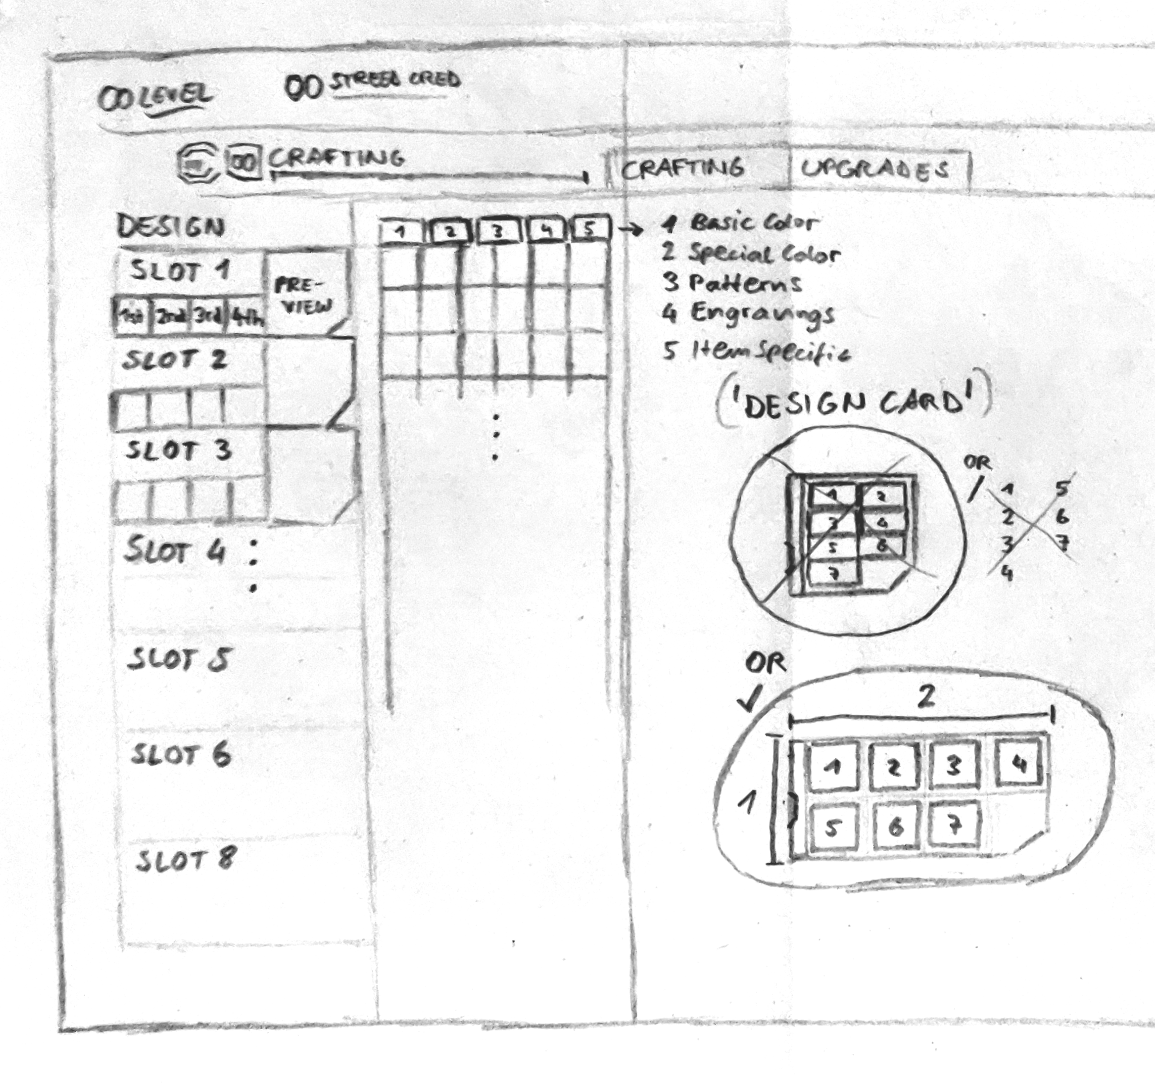 DesignCards2.png